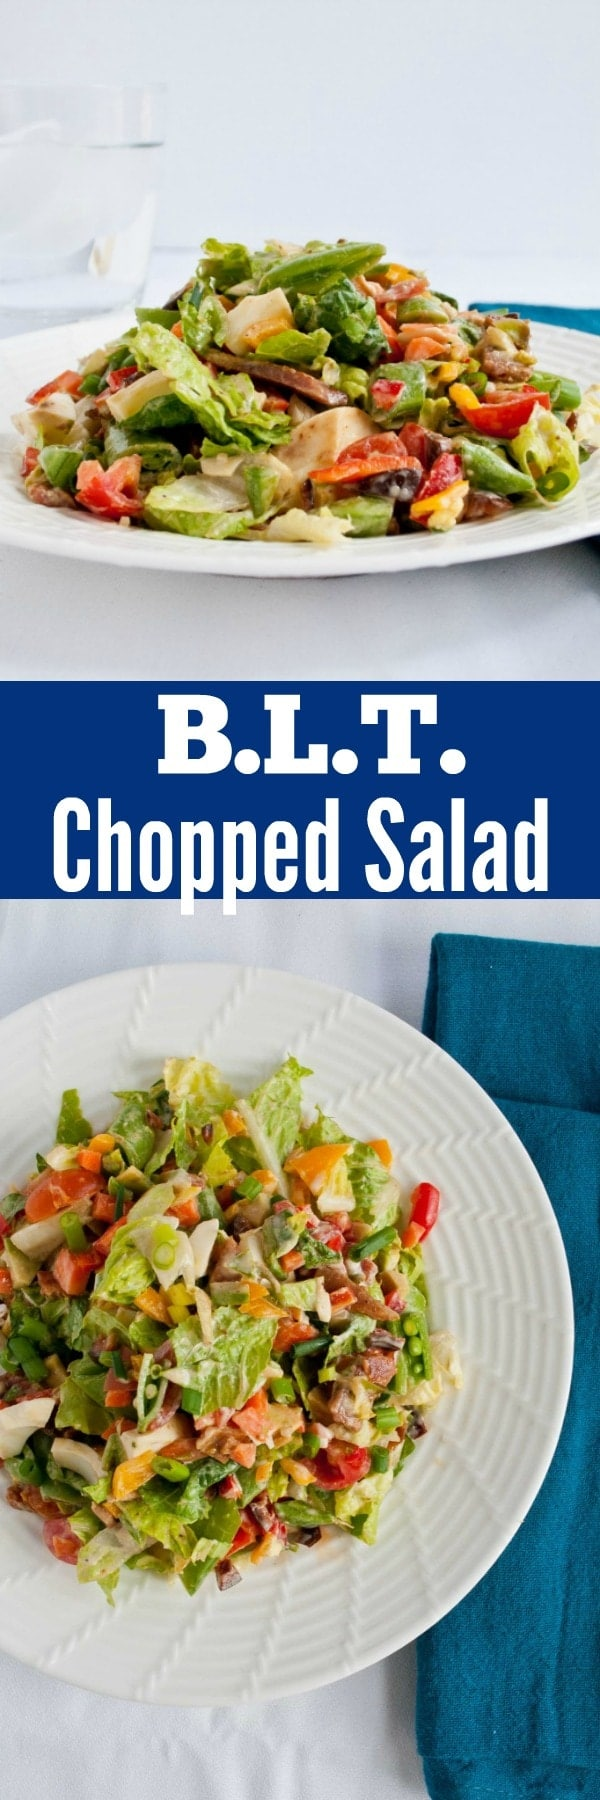 This BLT Chopped Salad is loaded with bacon, tomatoes, snap peas, peppers and a creamy Caesar dressing.